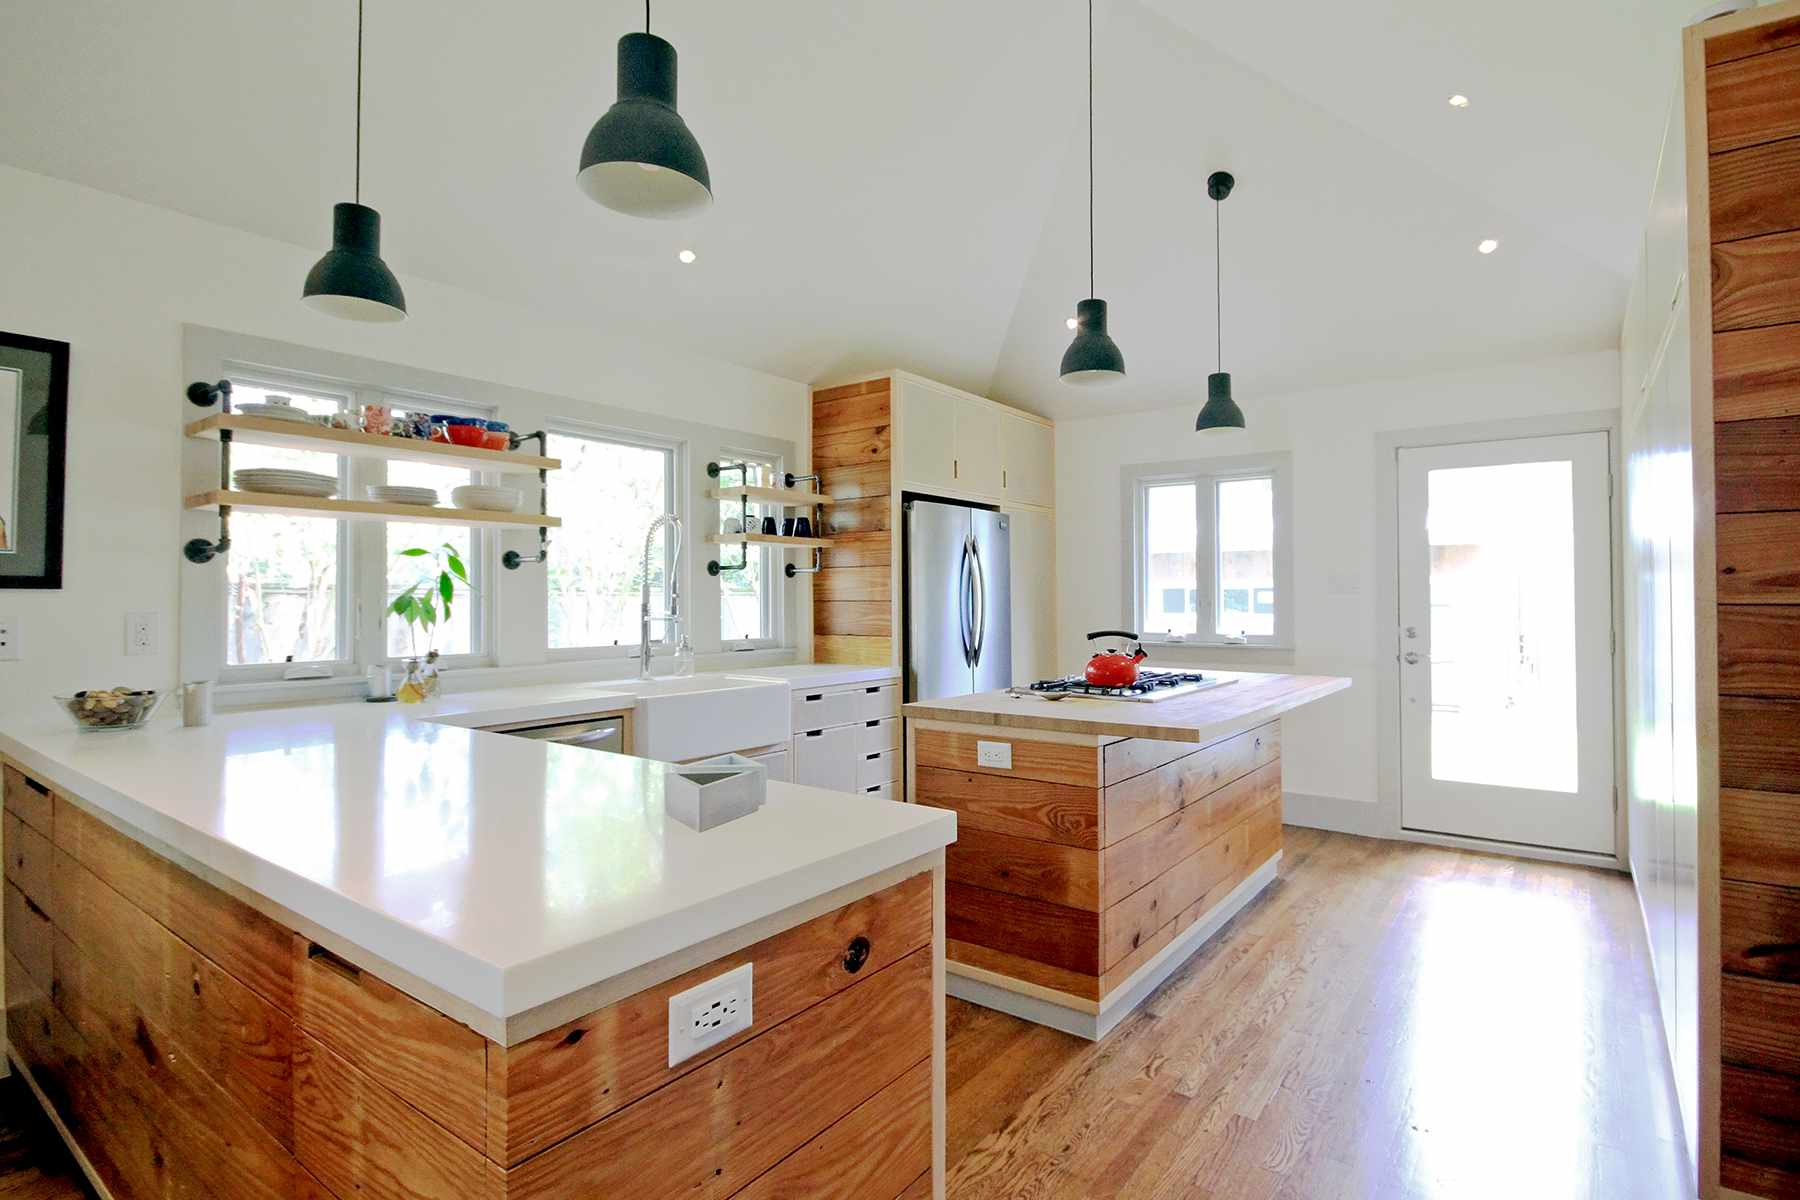 Thick solid surface countertop in rustic kitchen